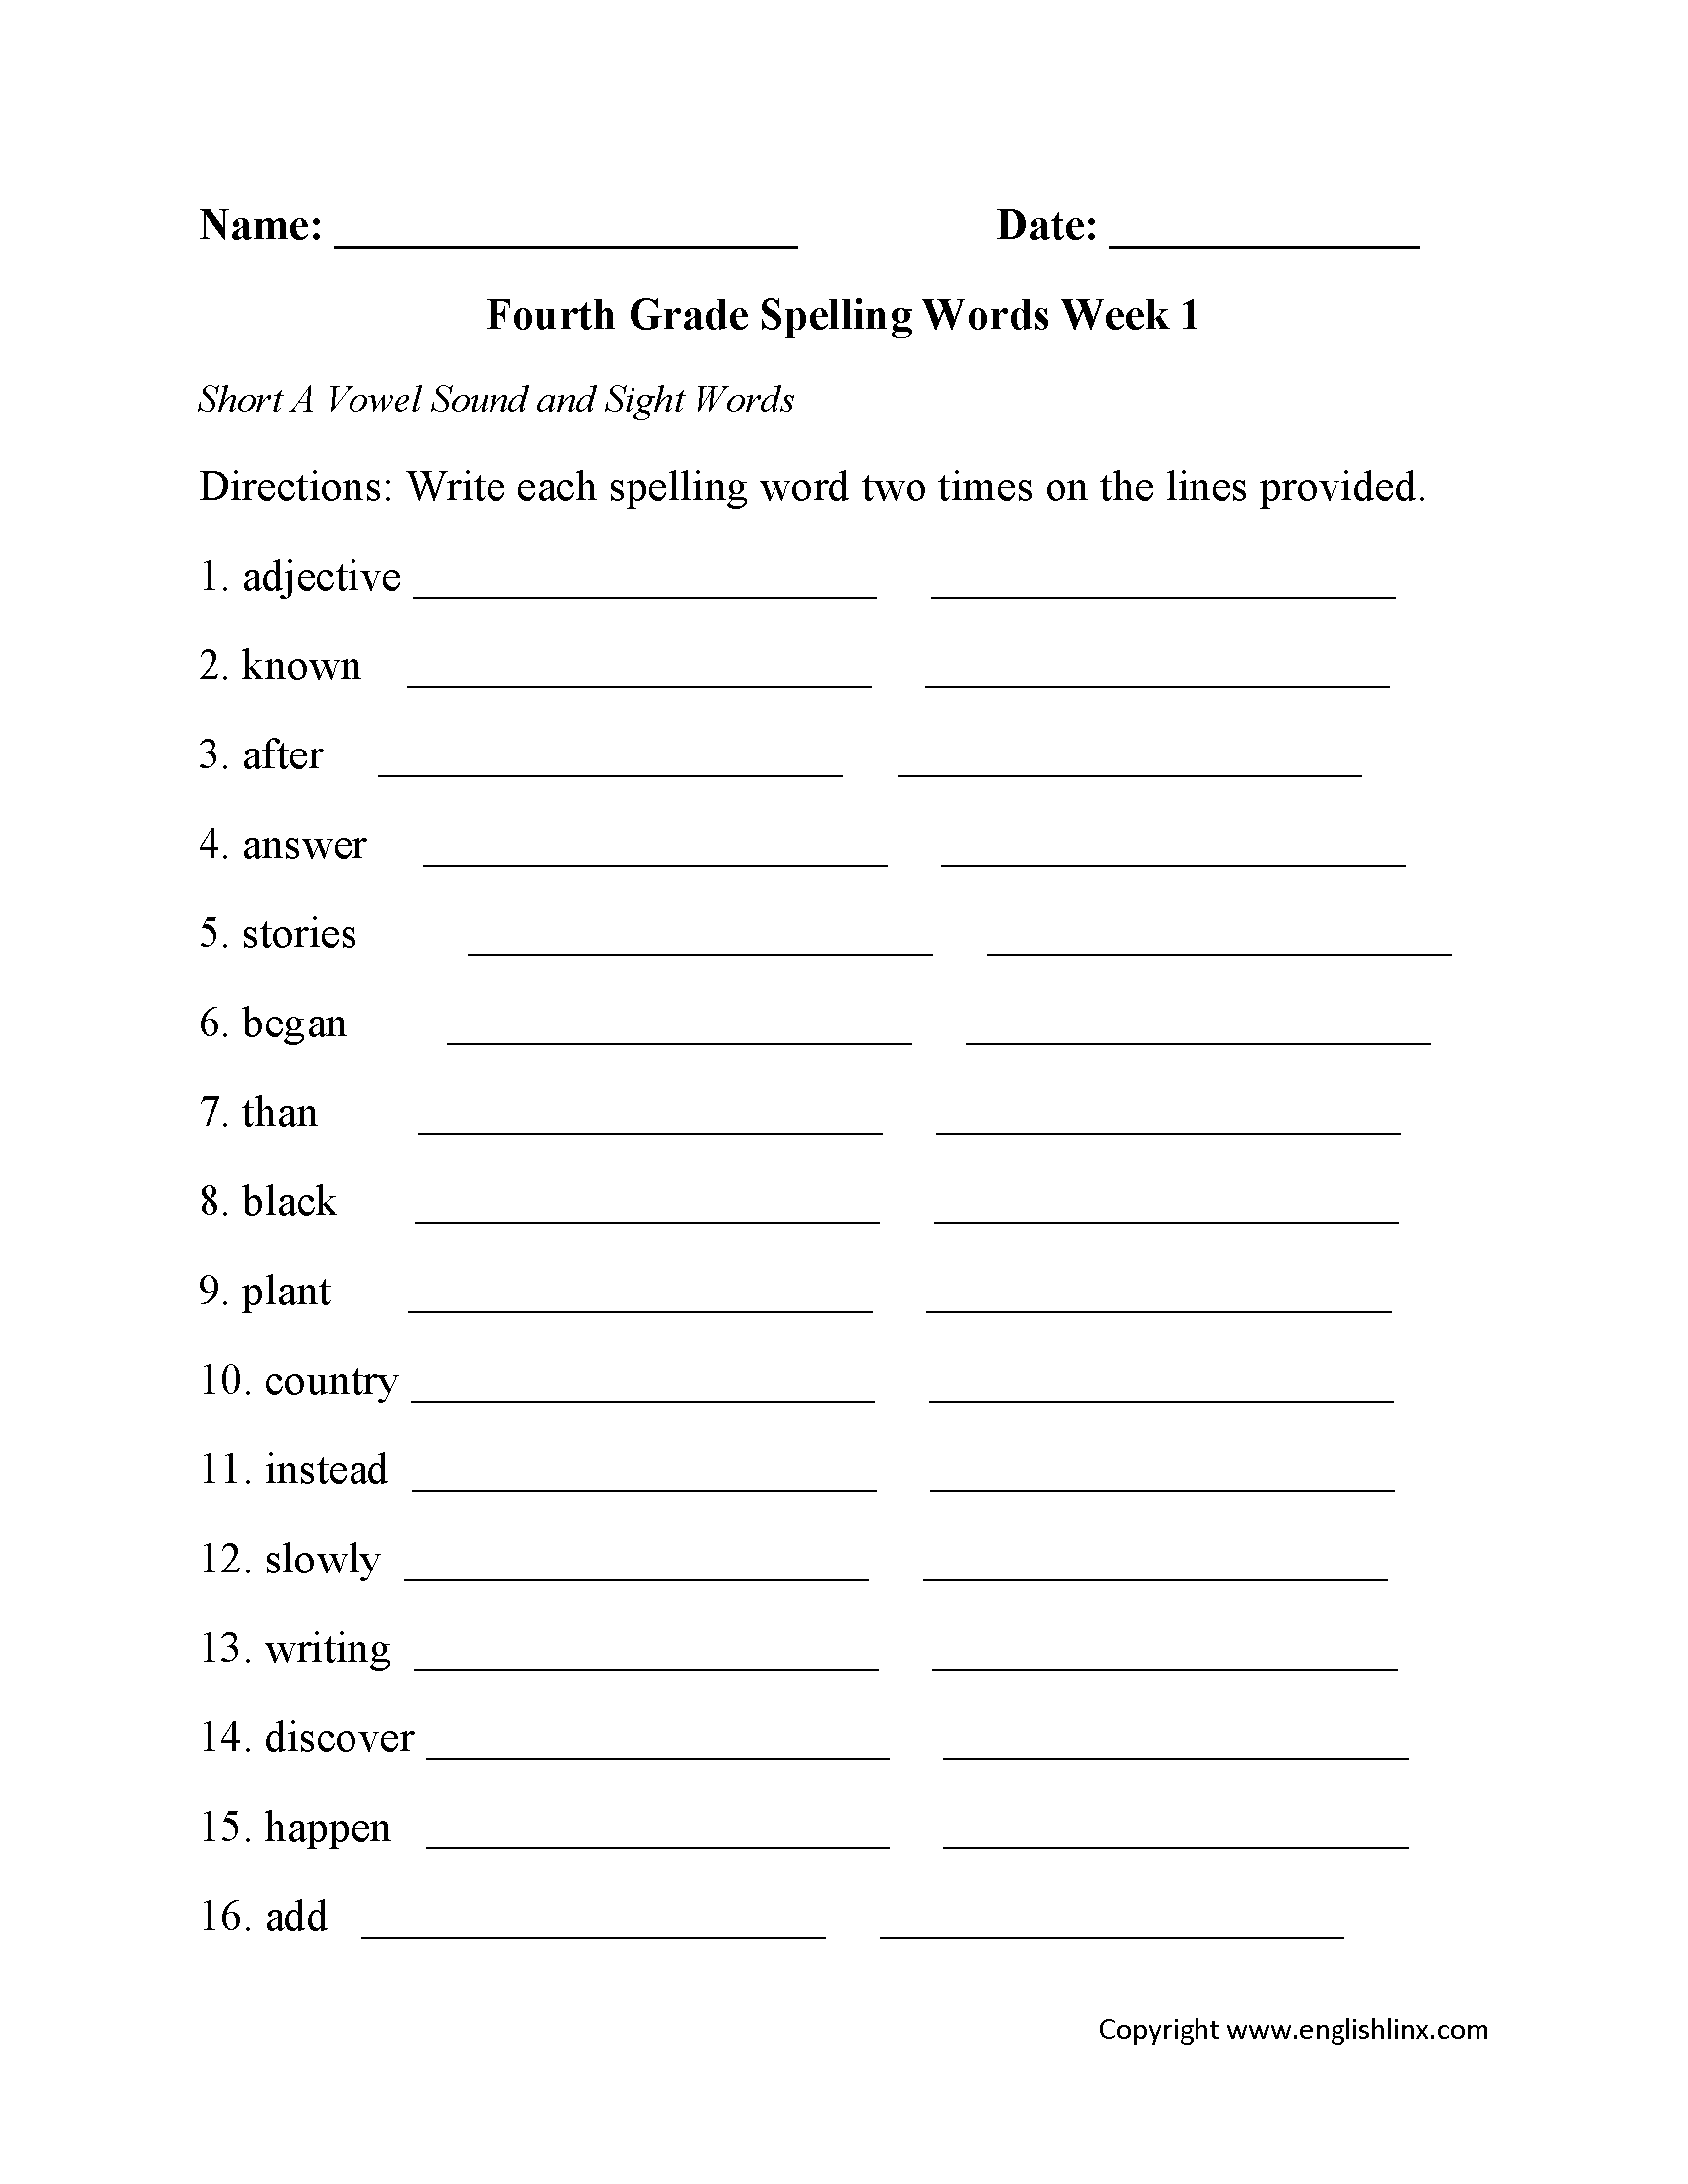 Worksheets Grade 4 Vocabulary Worksheets spelling worksheets fourth grade worksheets